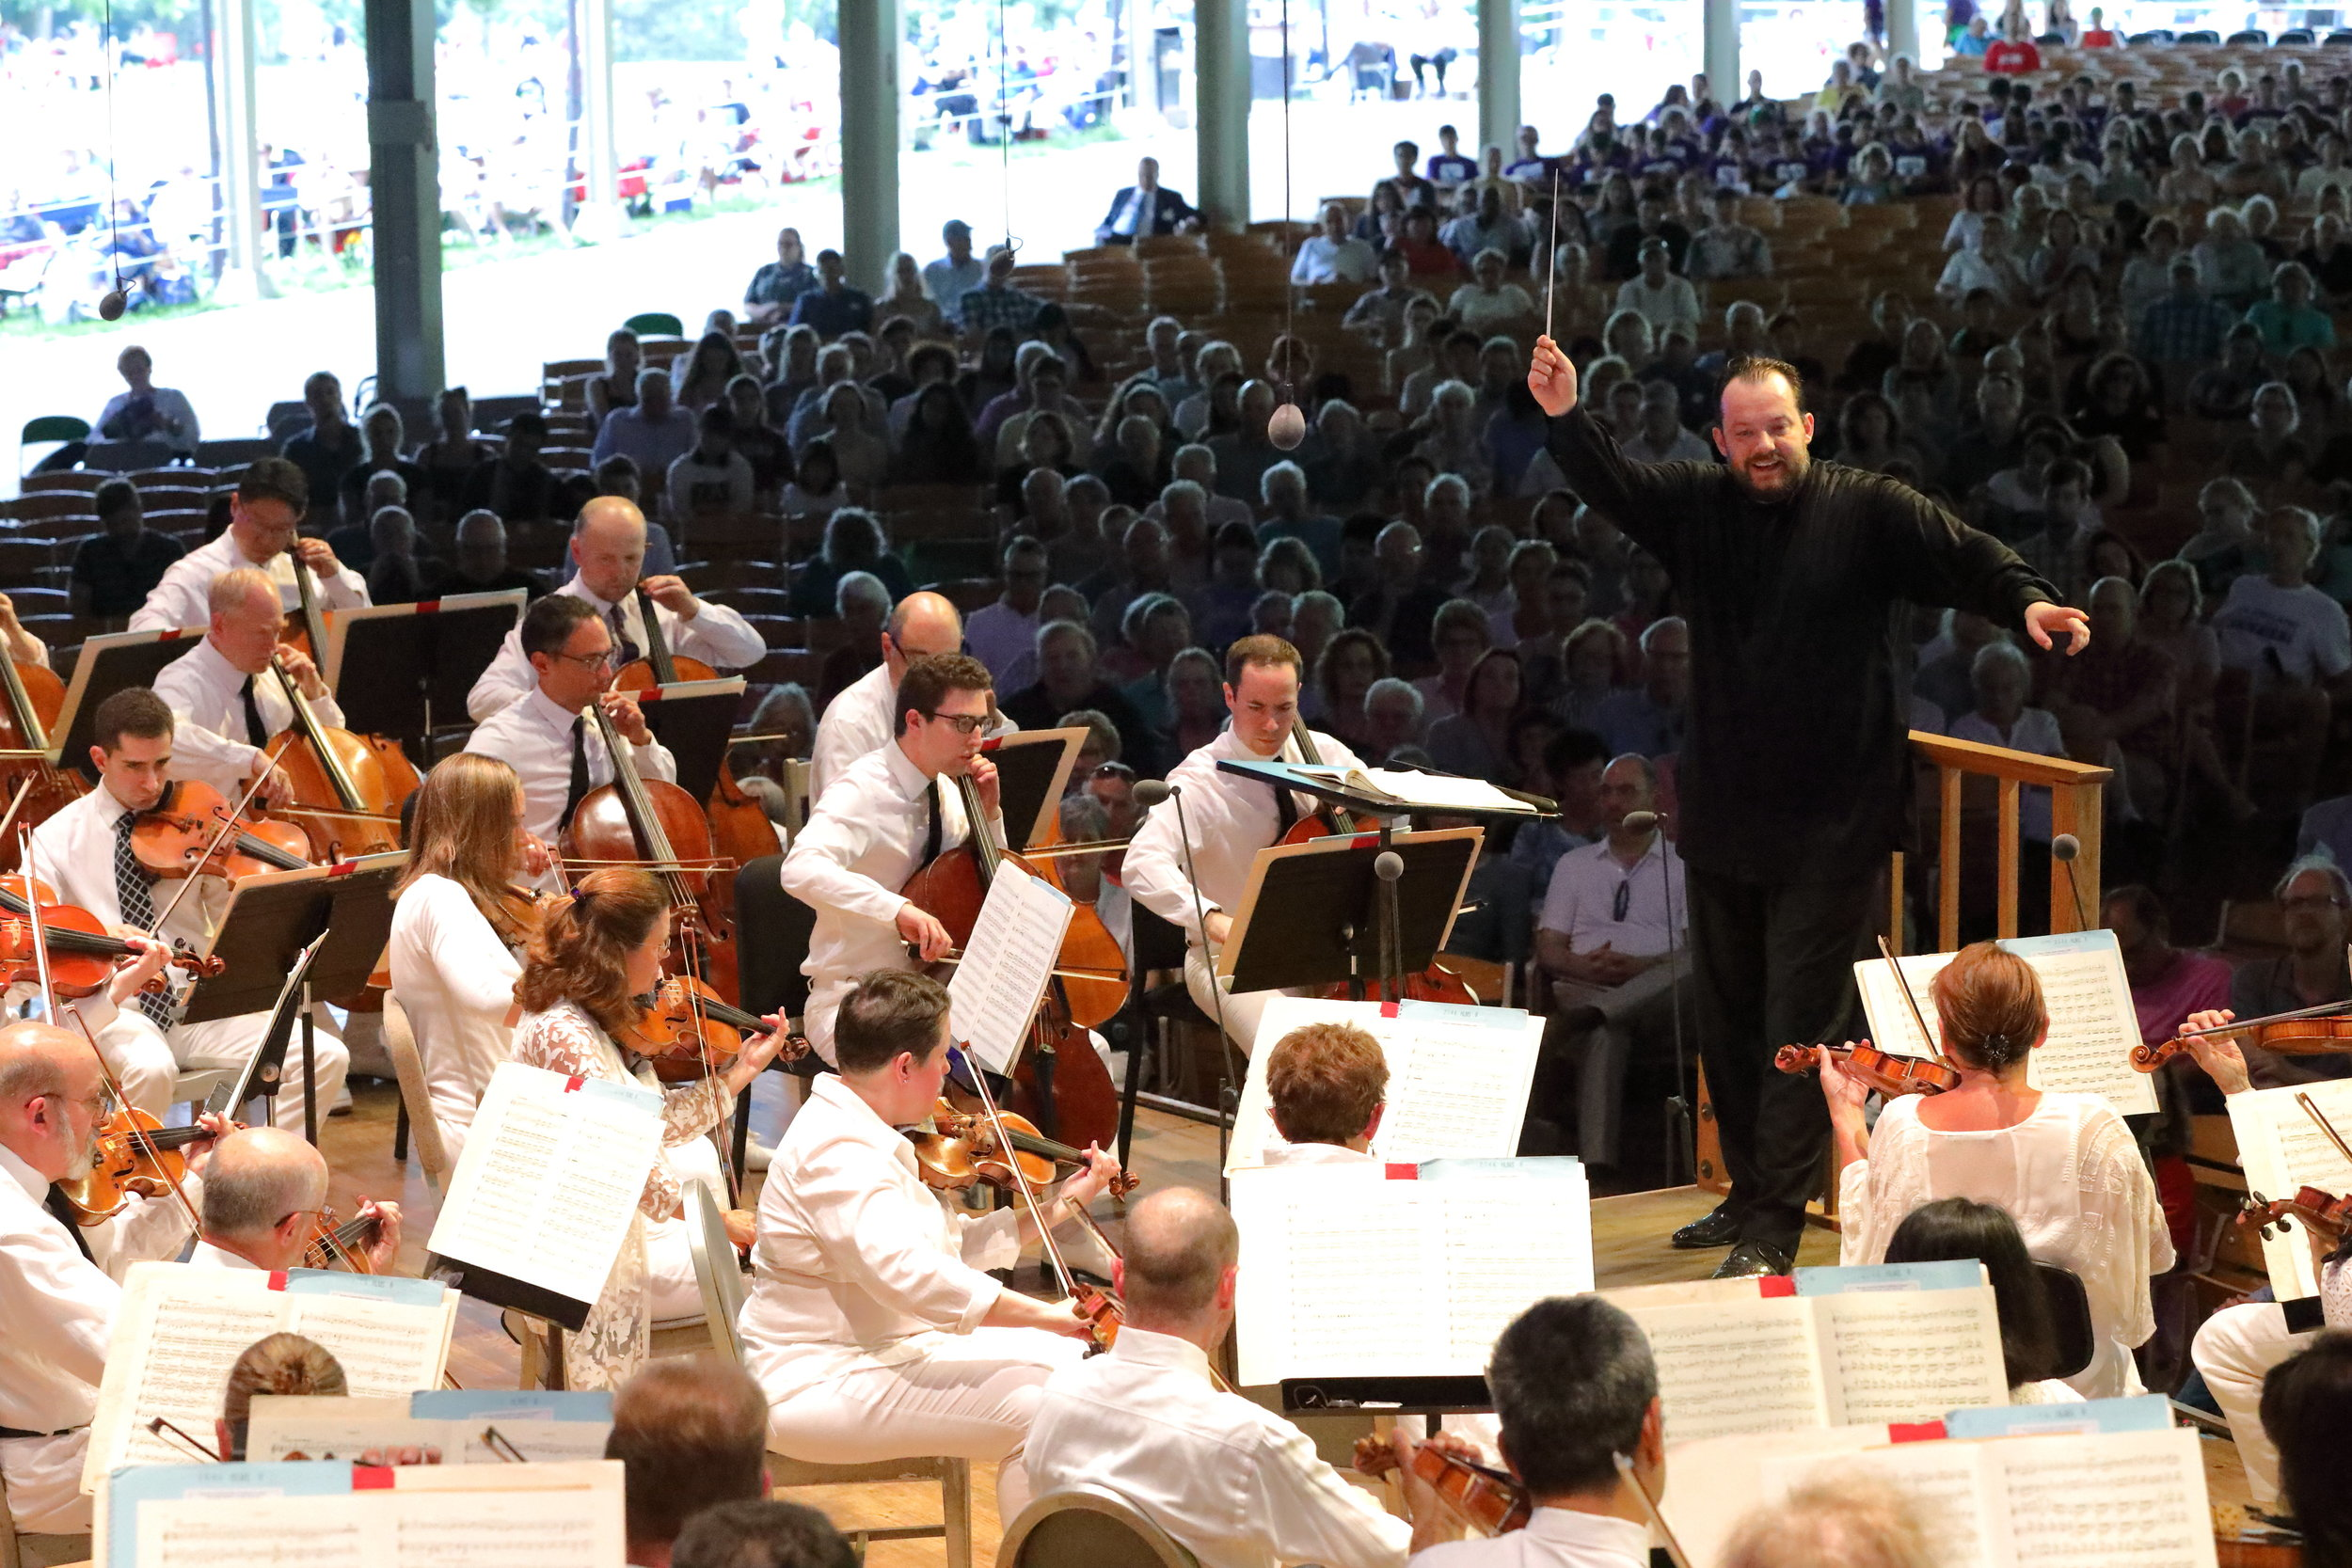 Andris Nelsons conducts the Boston Symphony Orchestra at Tanglewood. Hilary Scott photograph